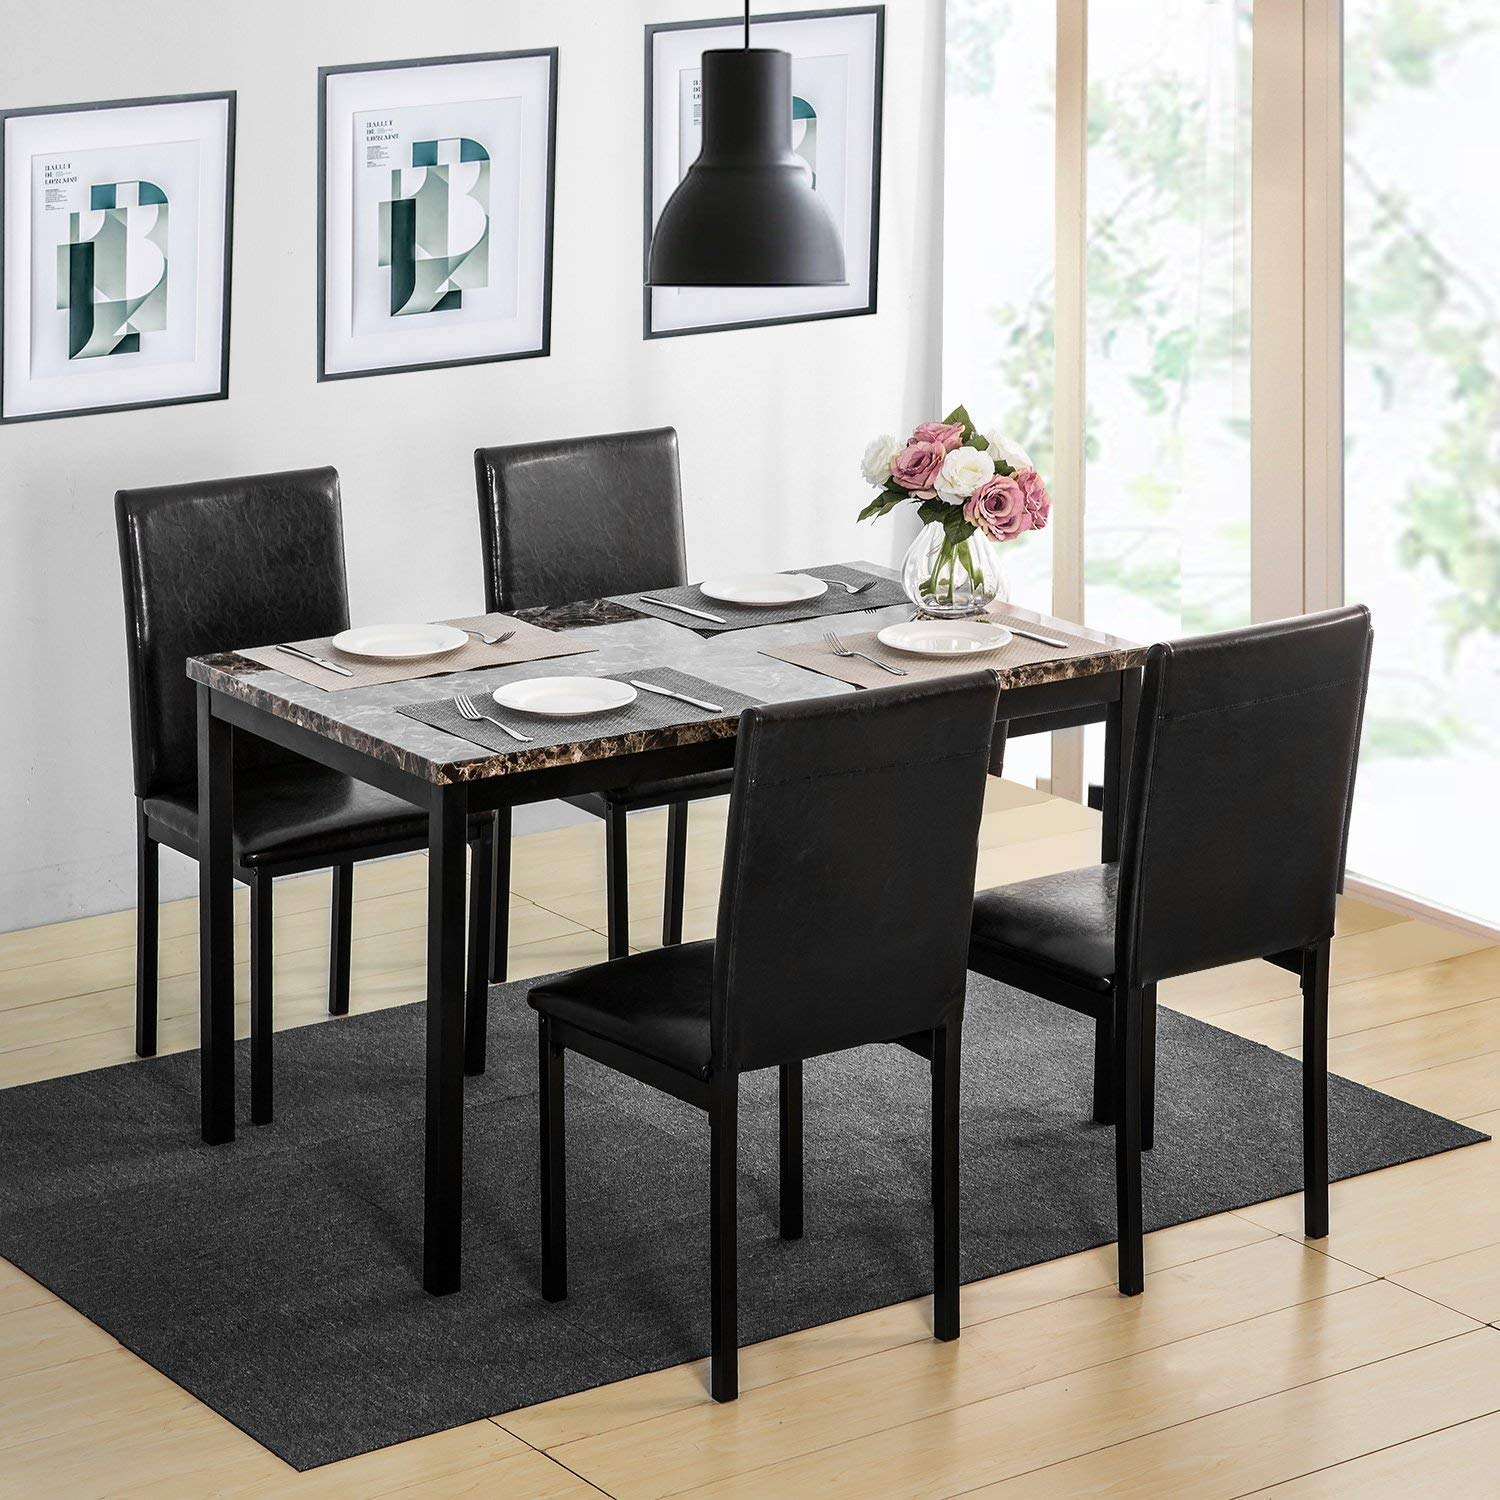 Harper & Bright Designs Dining Table Set for 4, Elegant Faux Marble Desk and 4 Upholstered PU Leather Chairs,